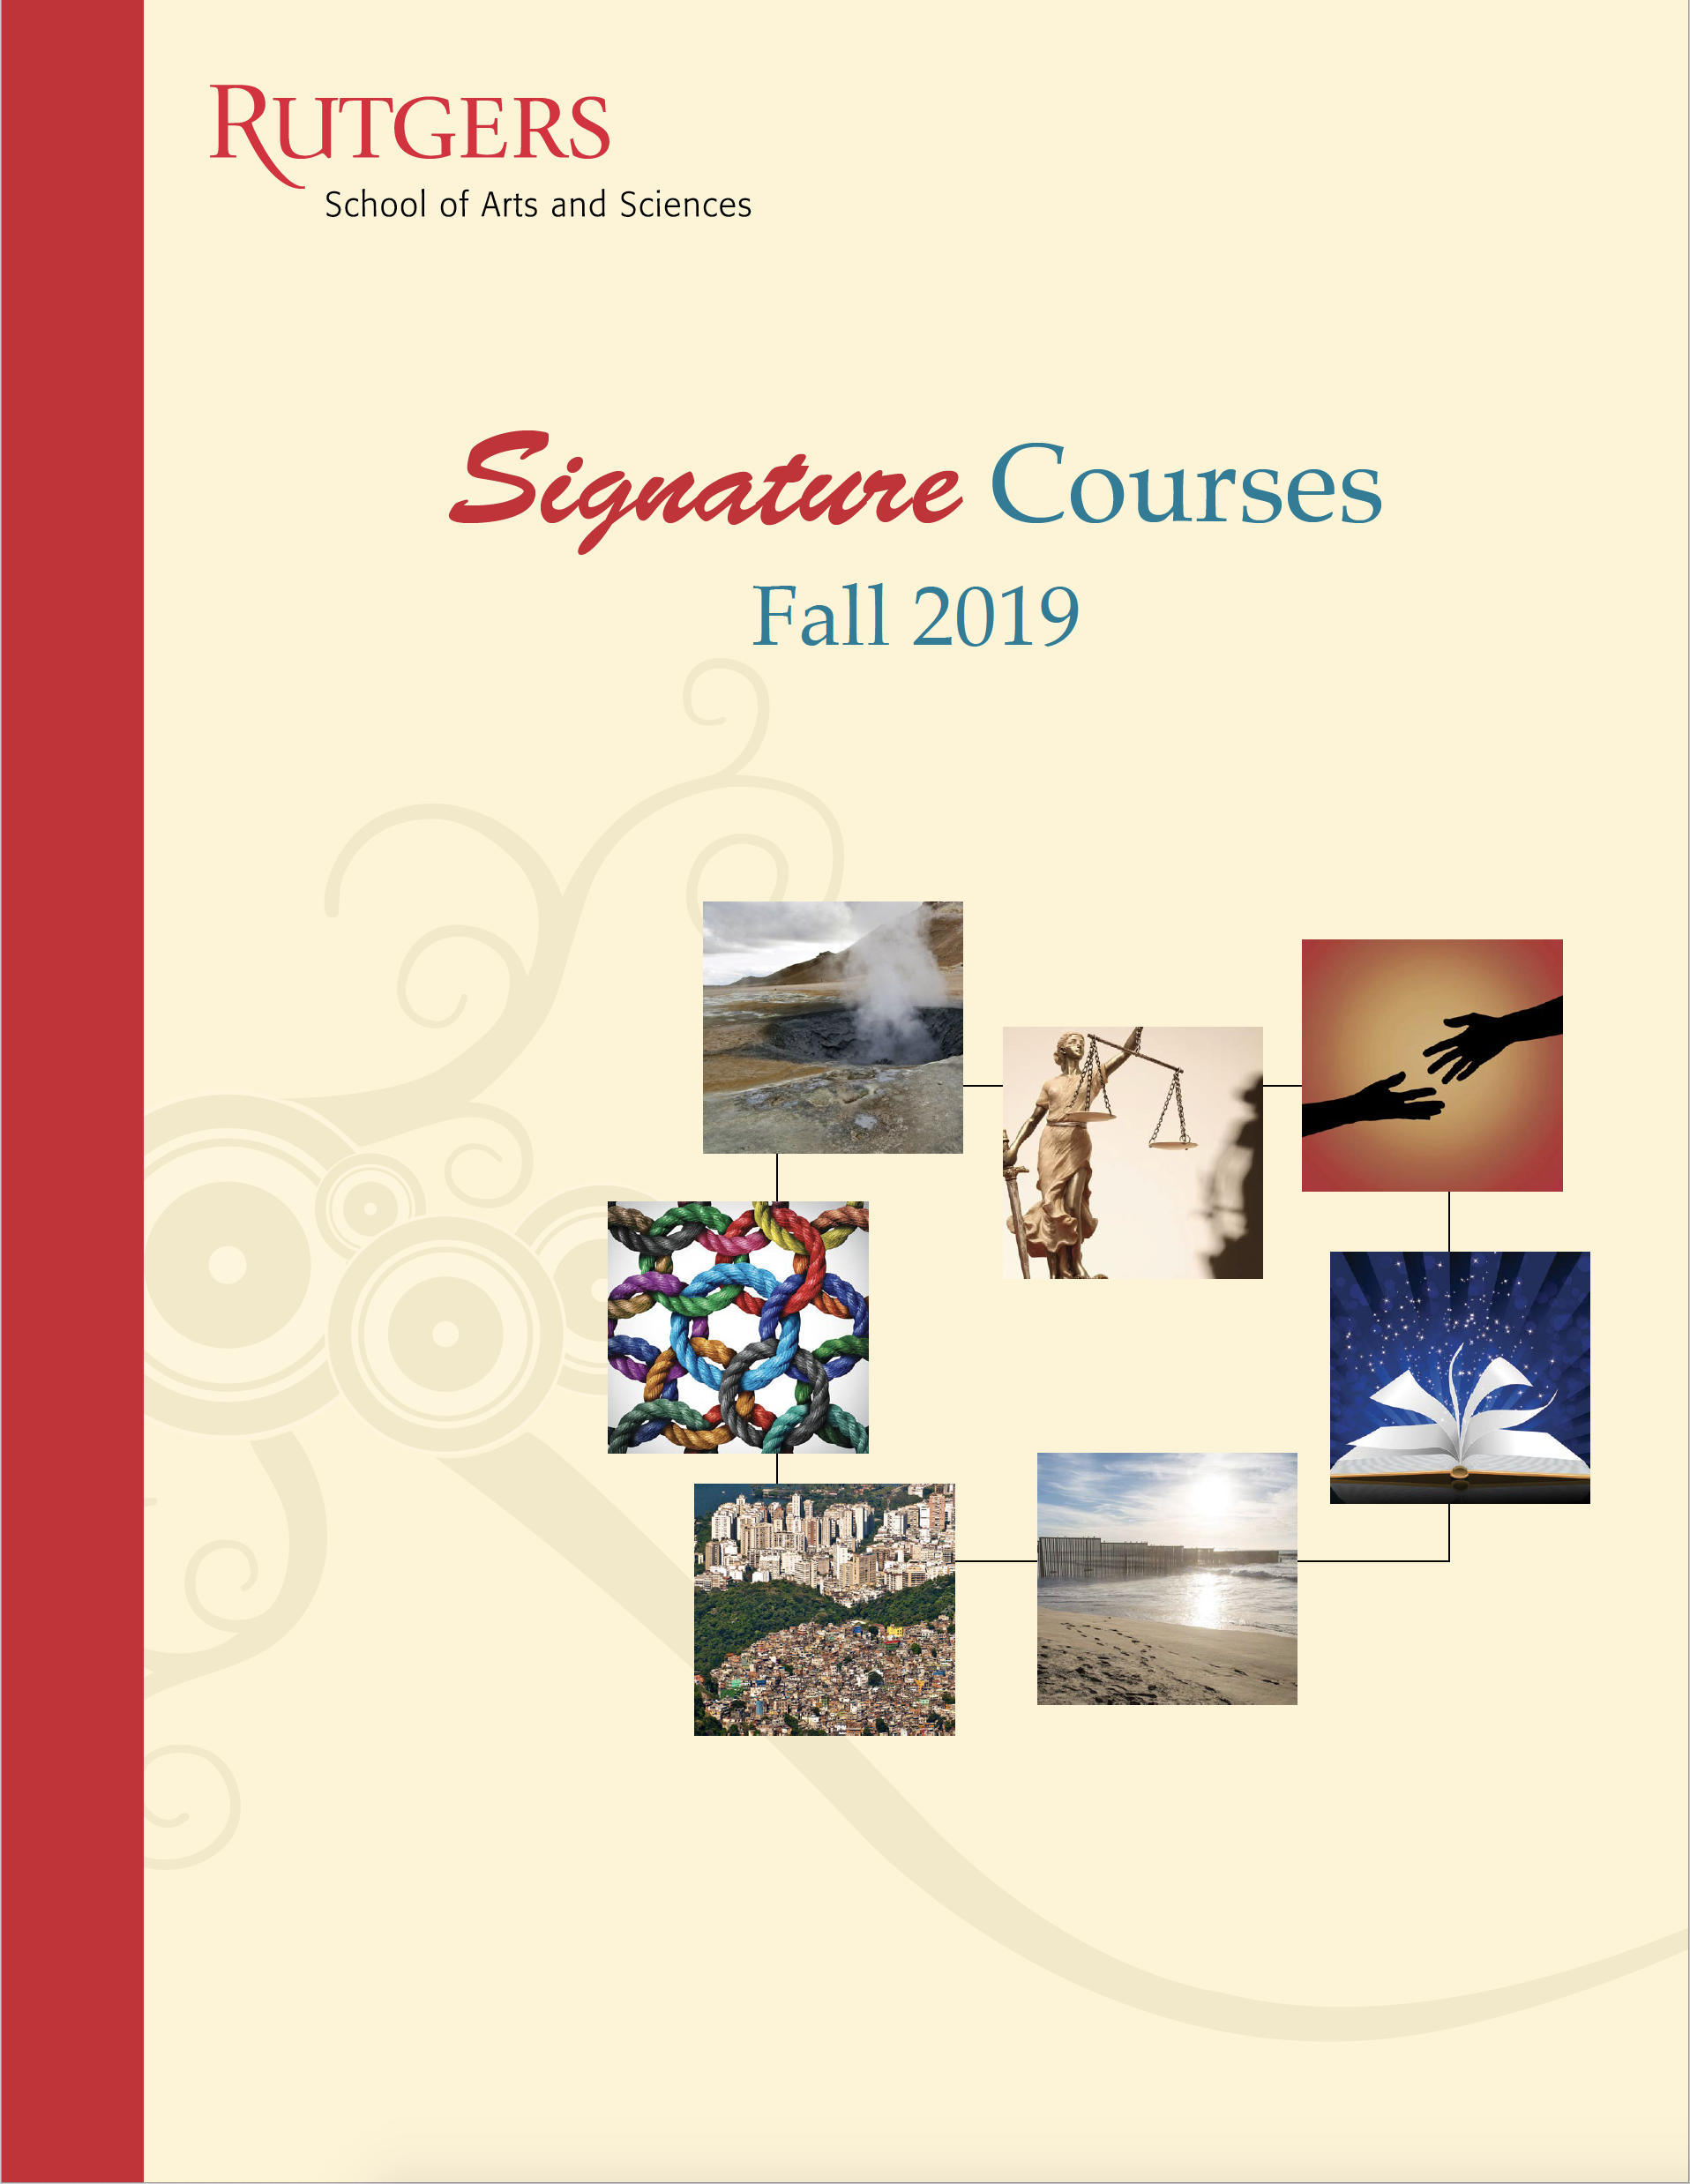 Fall 2019 Signature Courses Booklet cover